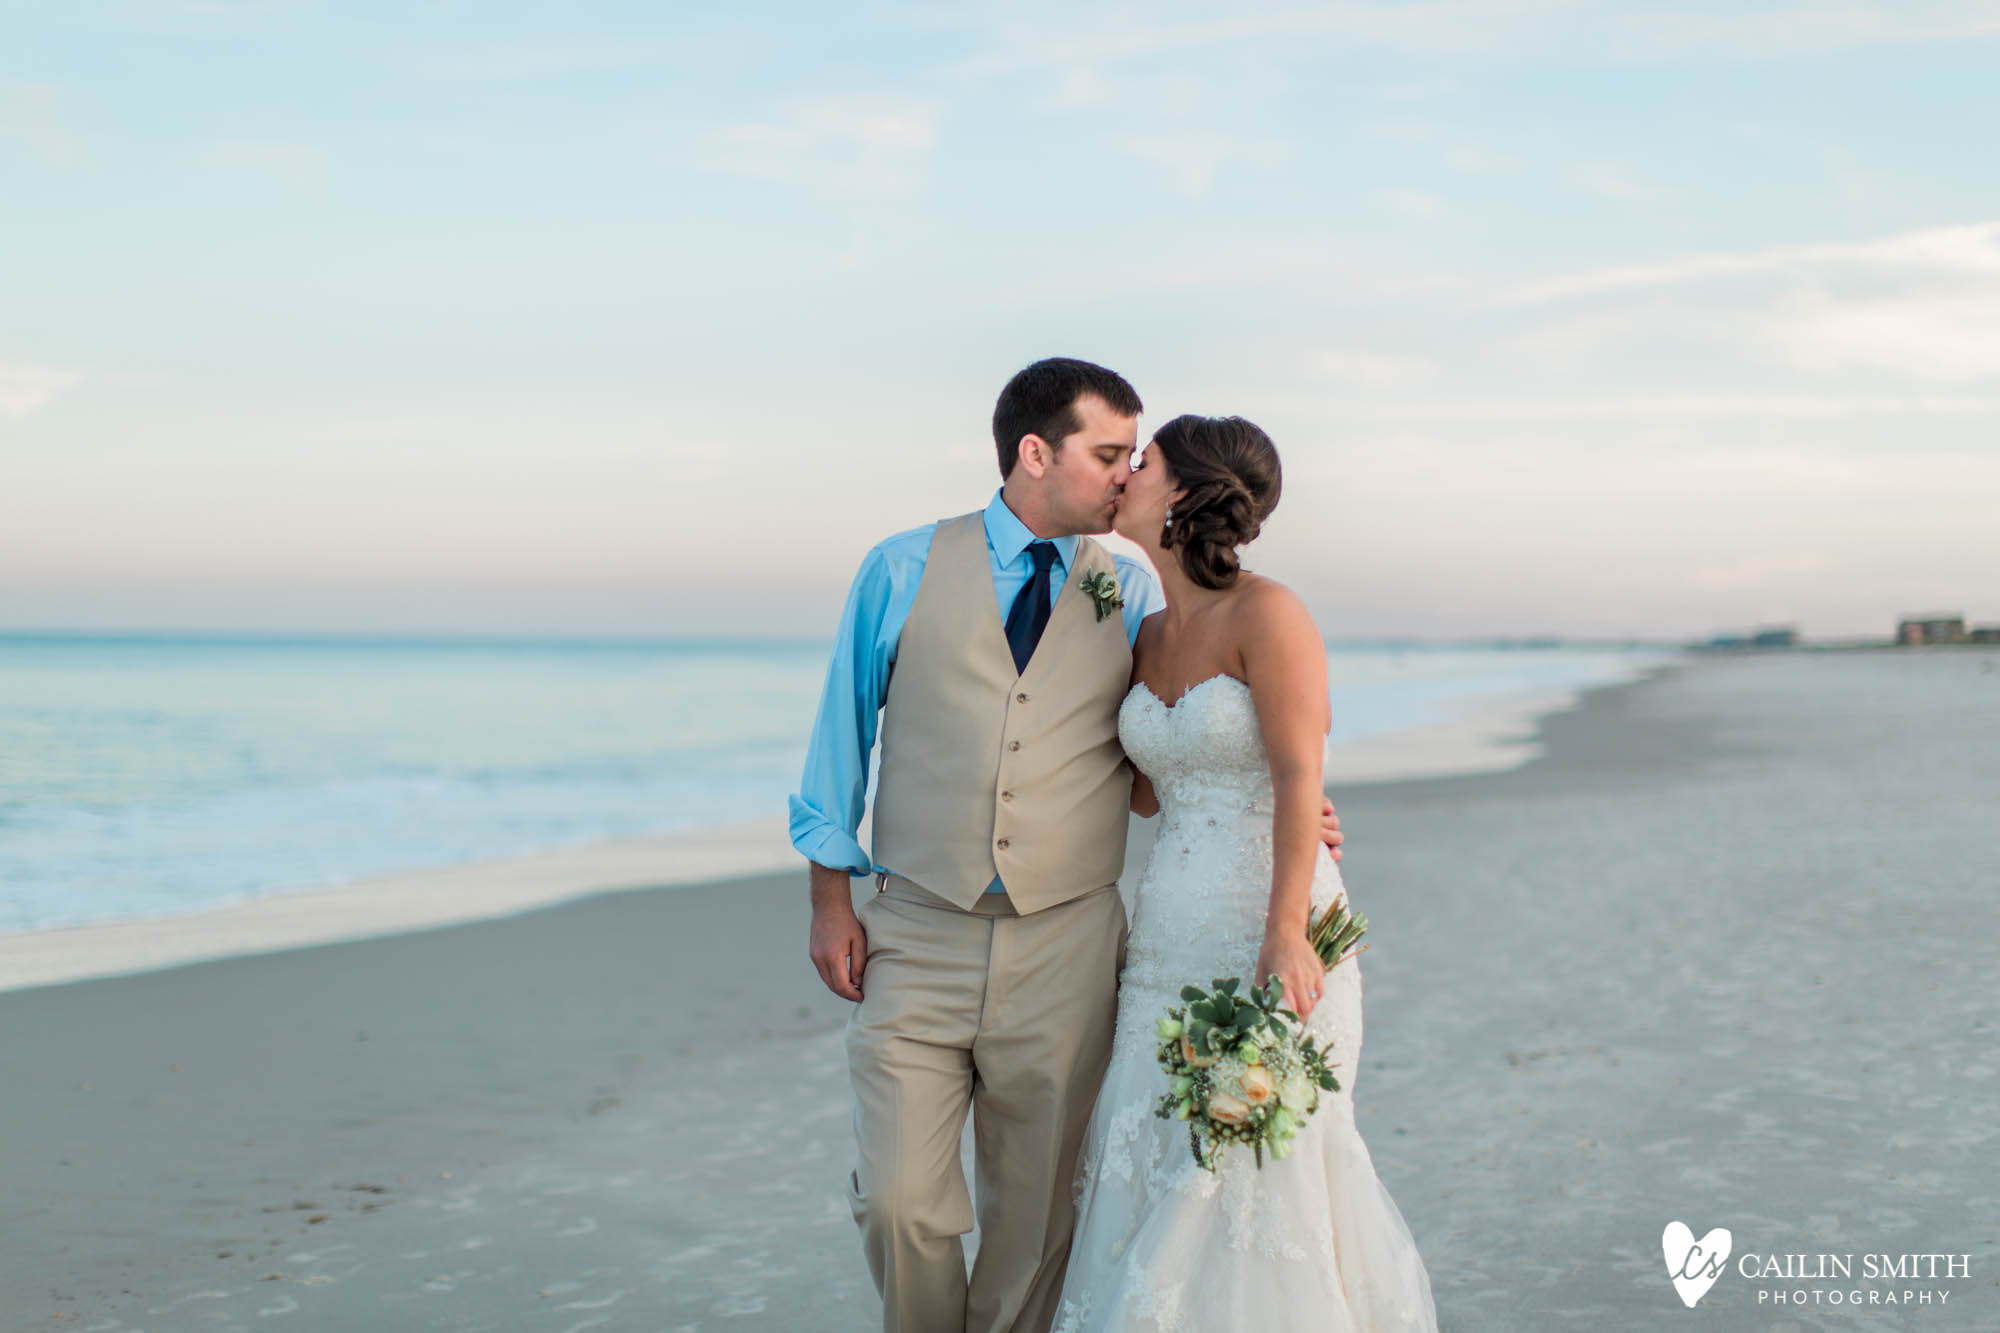 Kimberly_Ross_Amelia_Island_Wedding_Photography_050.jpg